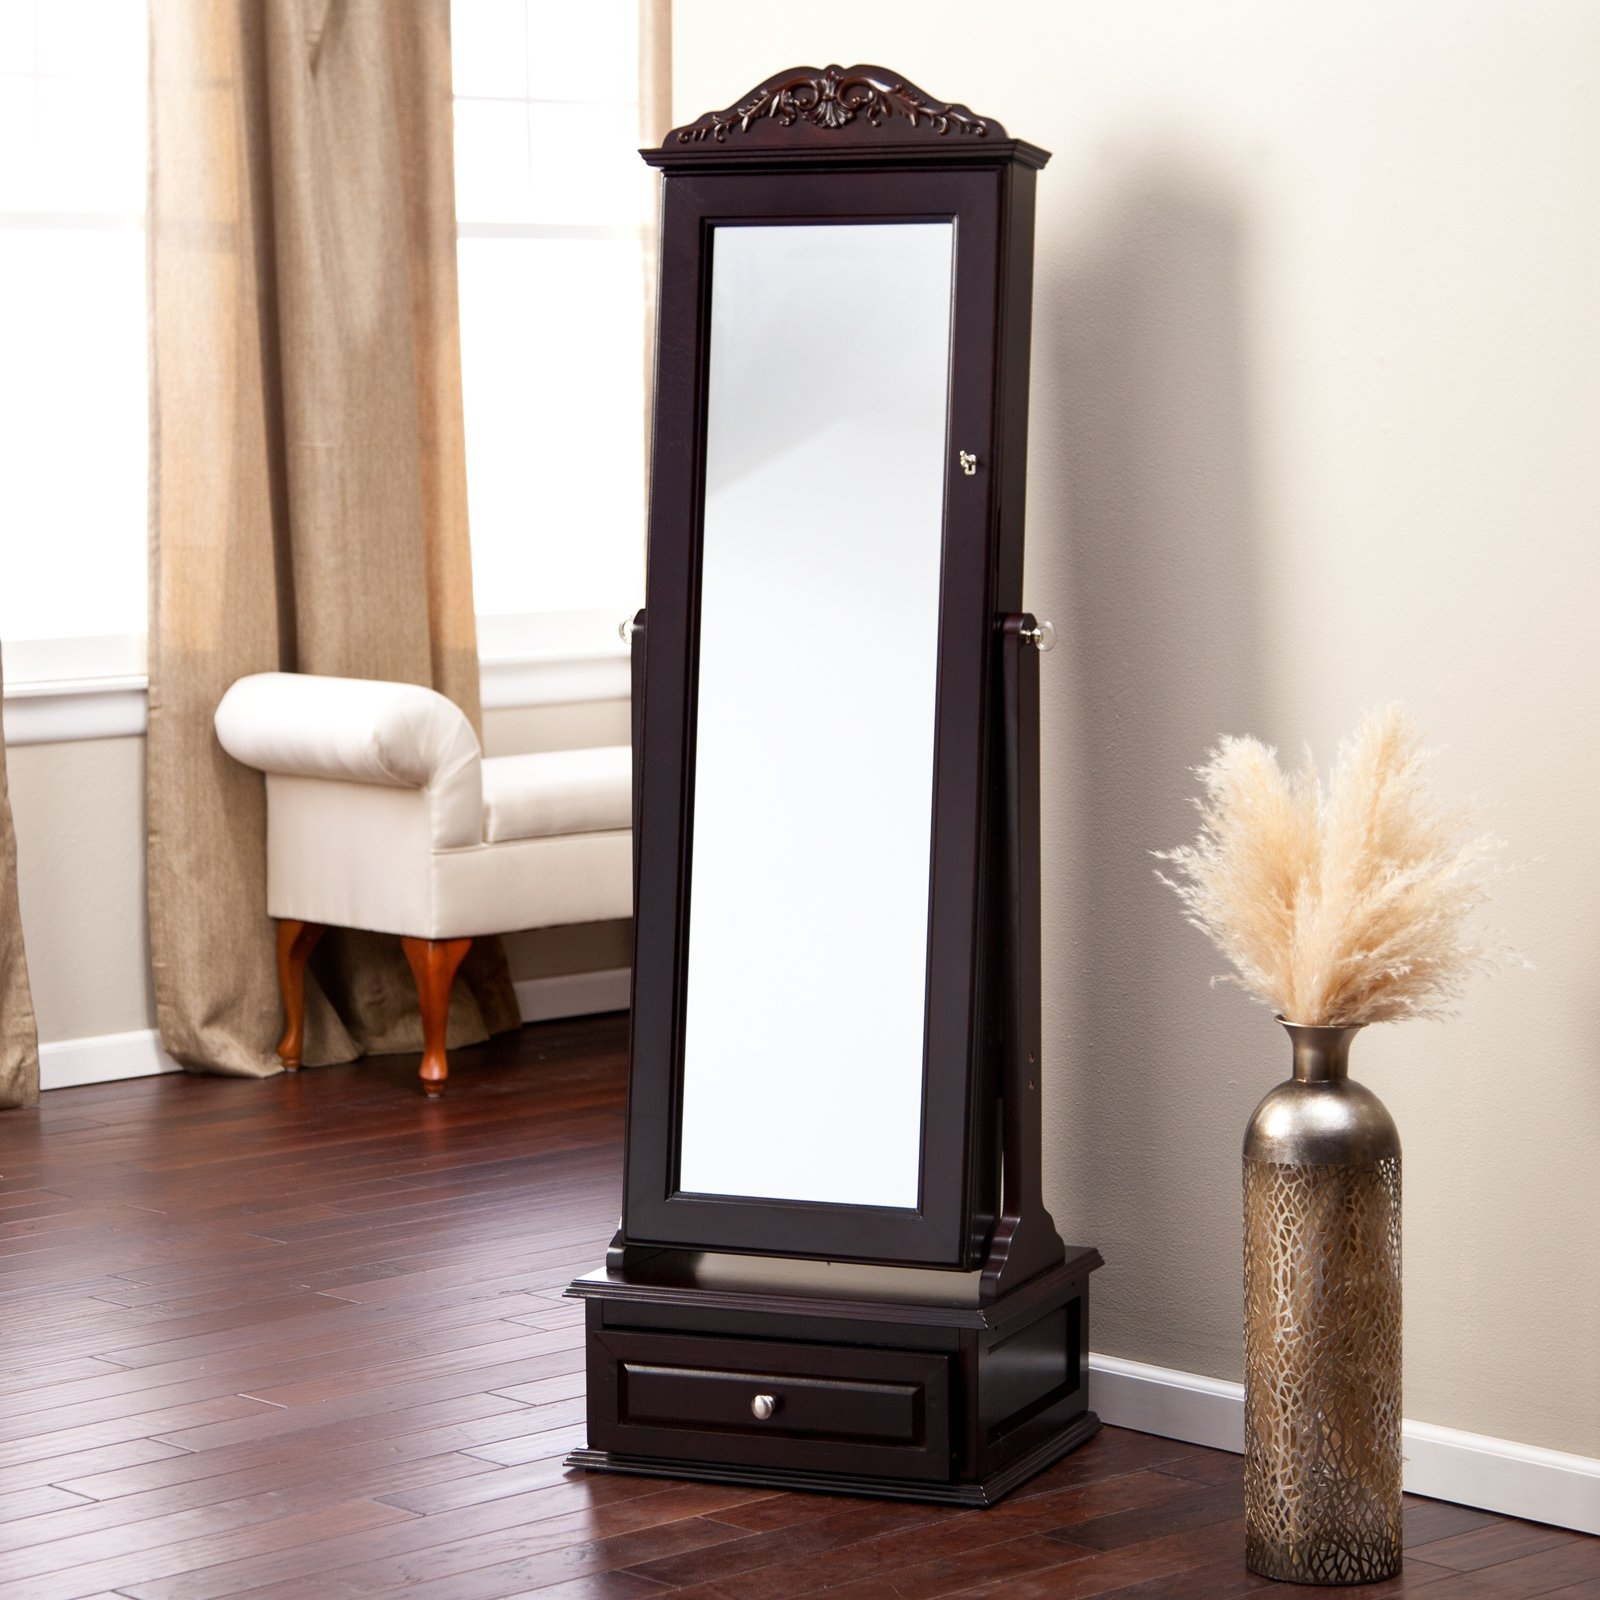 Free Standing Mirror Jewelry Armoire Best Furniture Designs Pertaining To Free Standing Mirrors For Sale (Image 11 of 15)